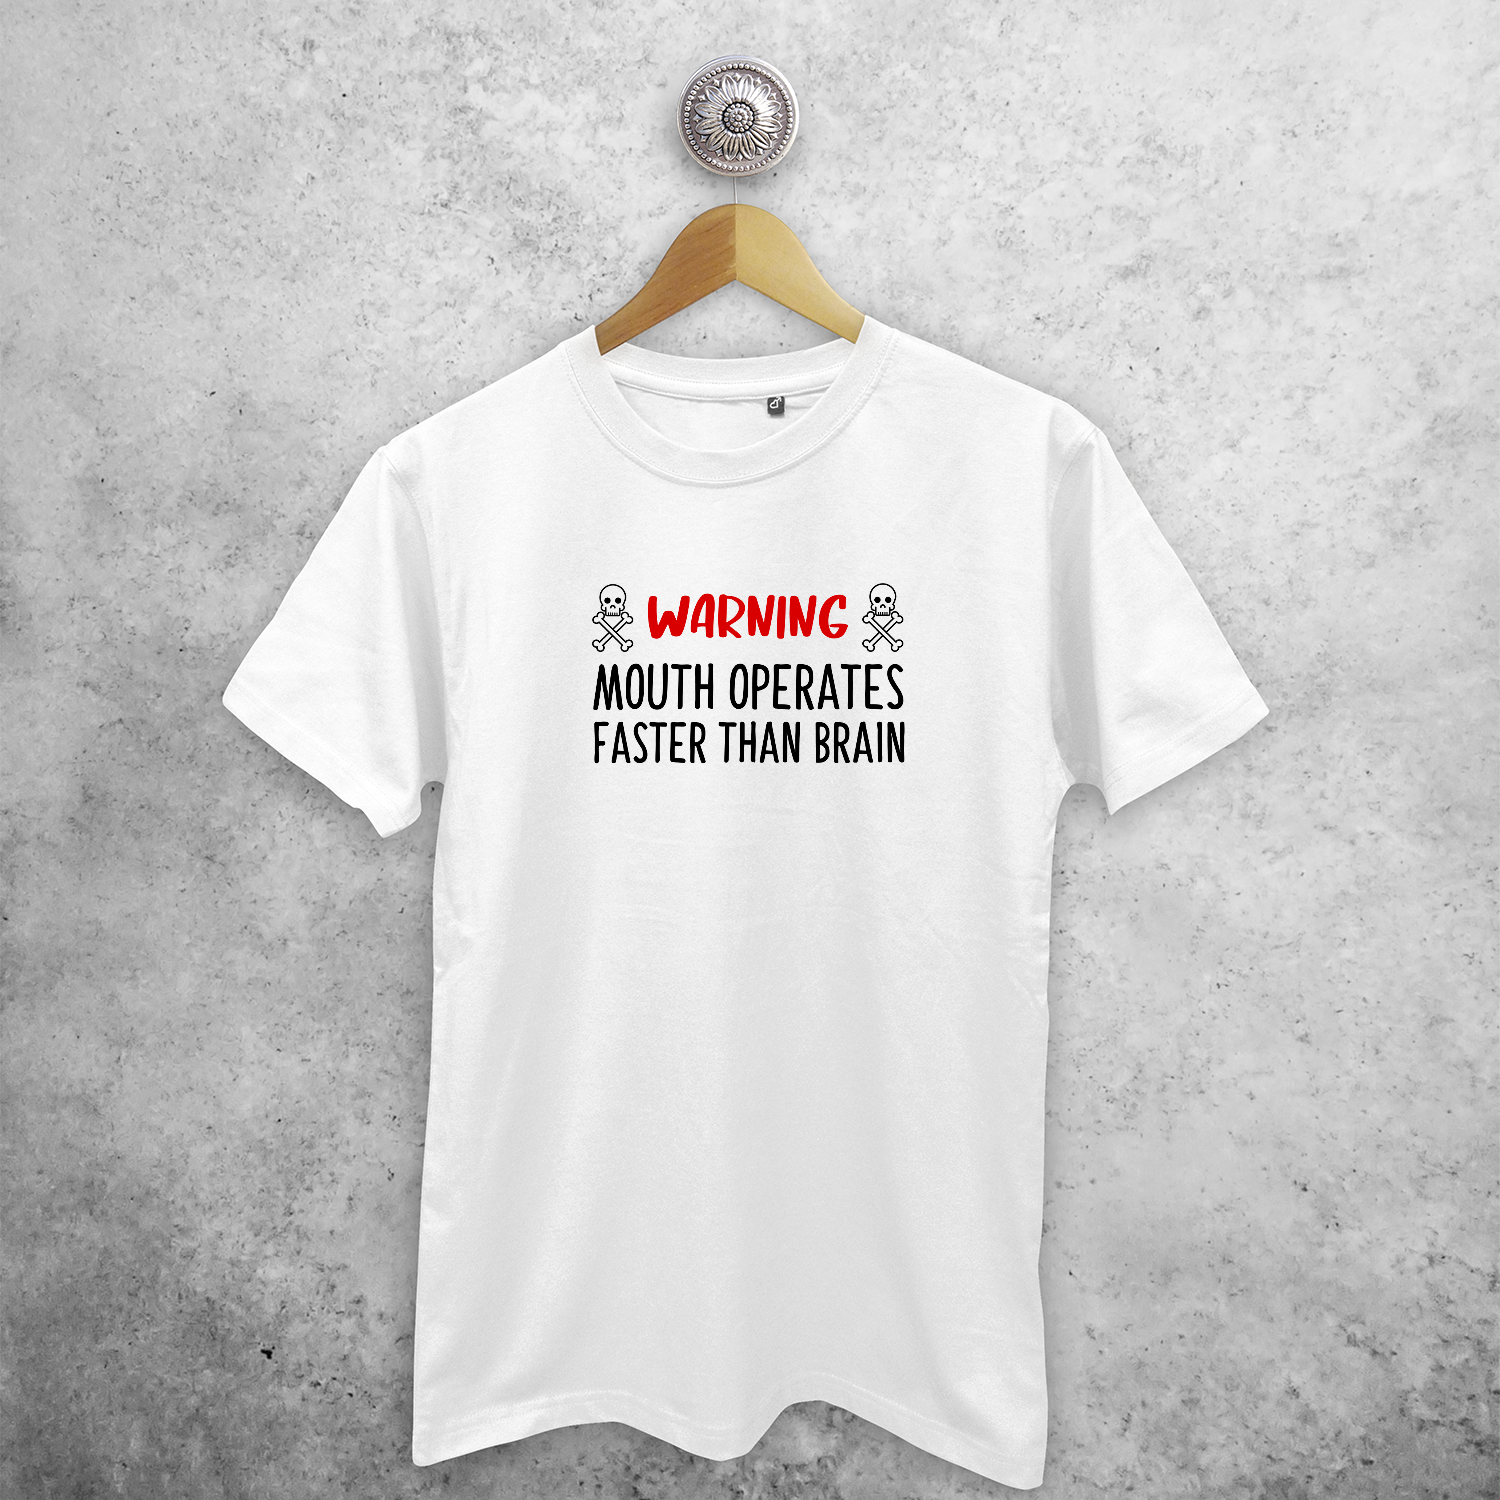 'Warning: mouth operates faster than mouth' adult shirt